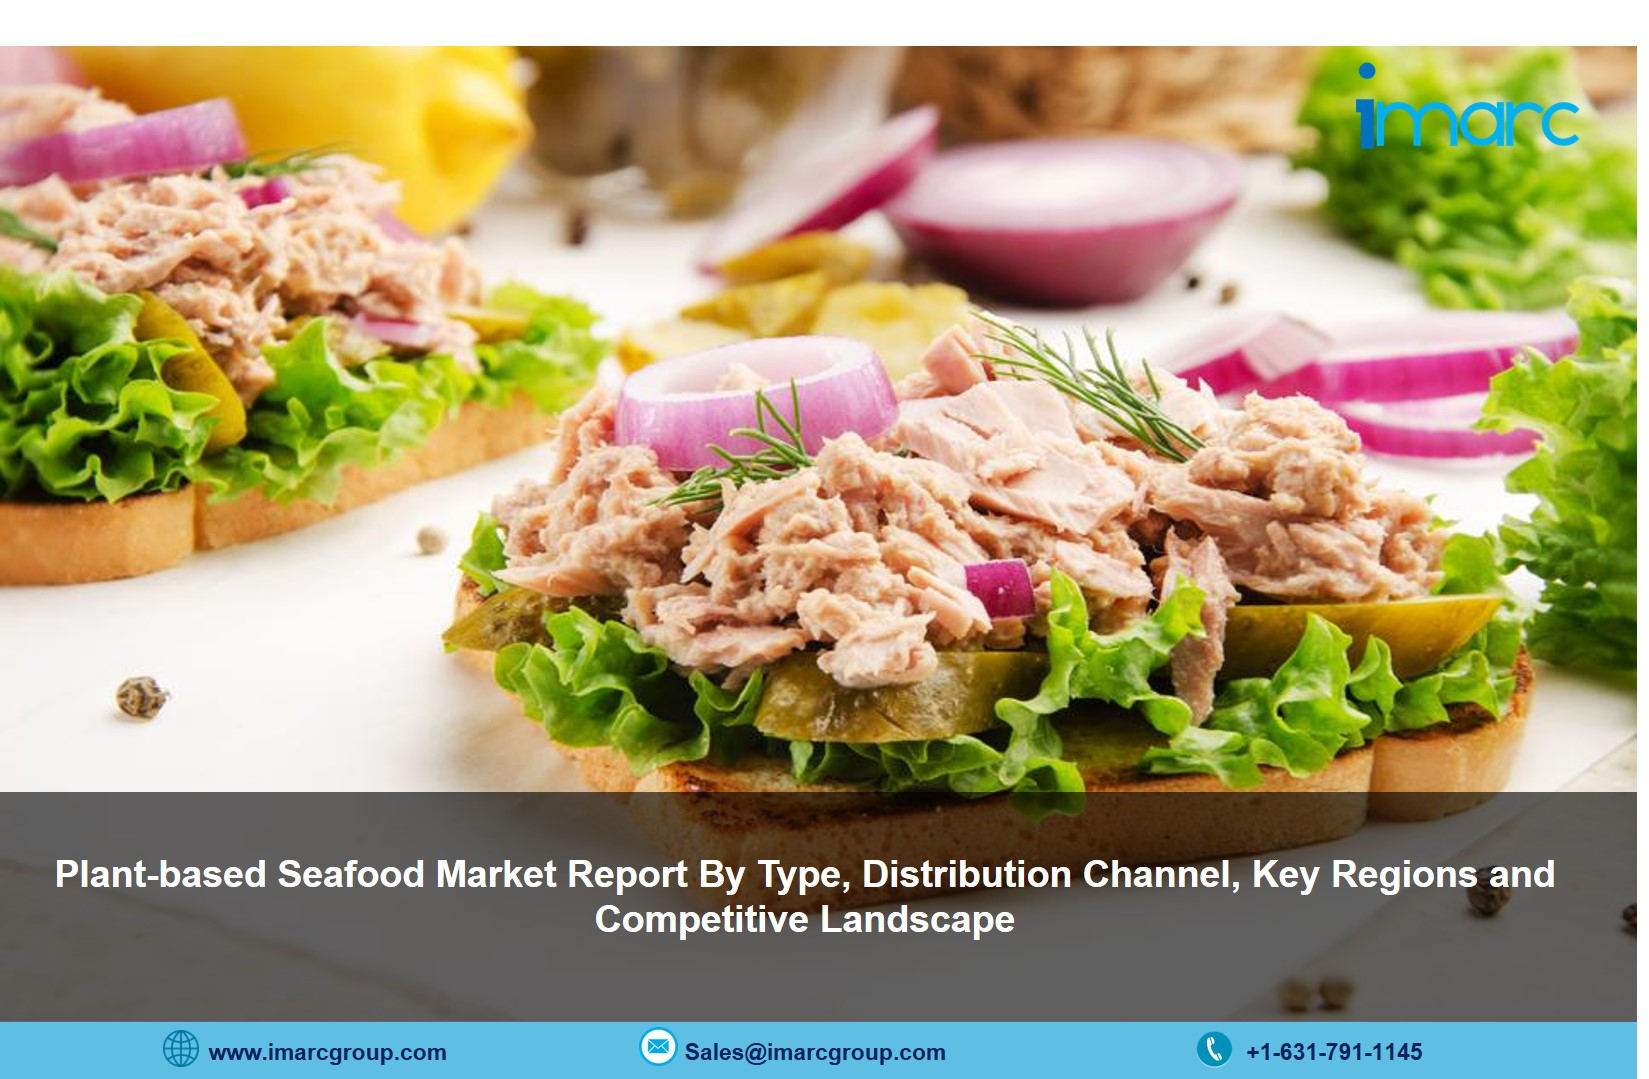 Plant-based Seafood Market Size, Share, Price, Trends and Forecast 2021-26